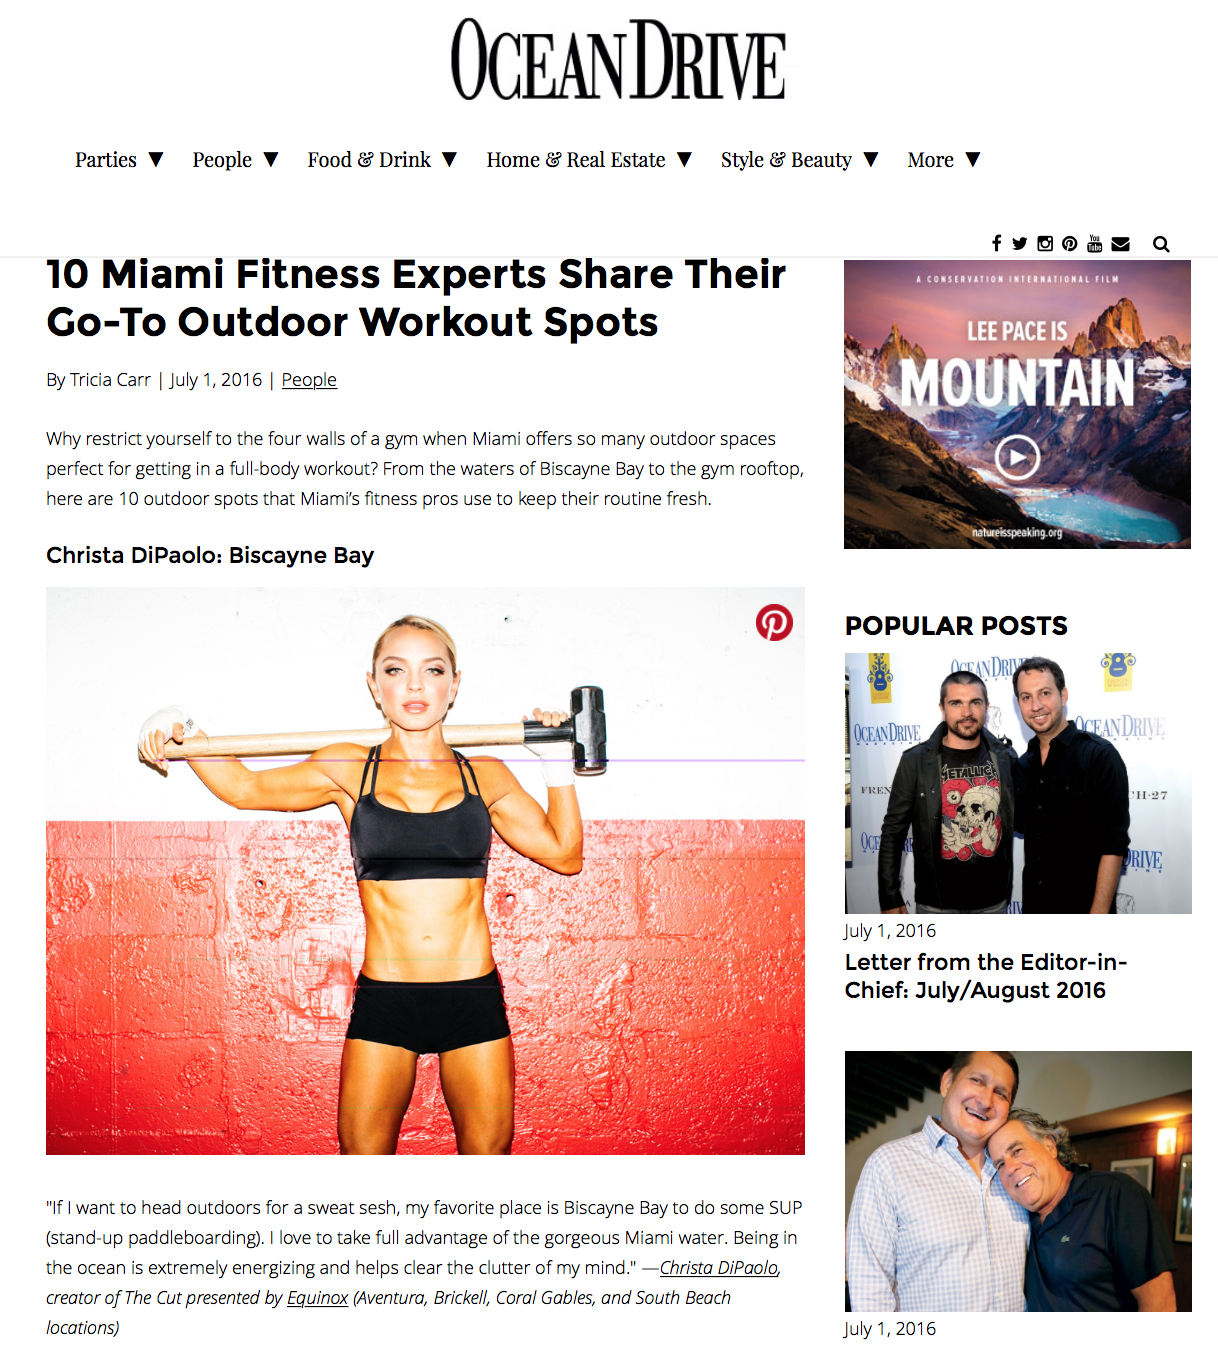 OceanDrive.Com – 10 Miami Fitness Experts Share Their Go-To Outdoor Workout Spots